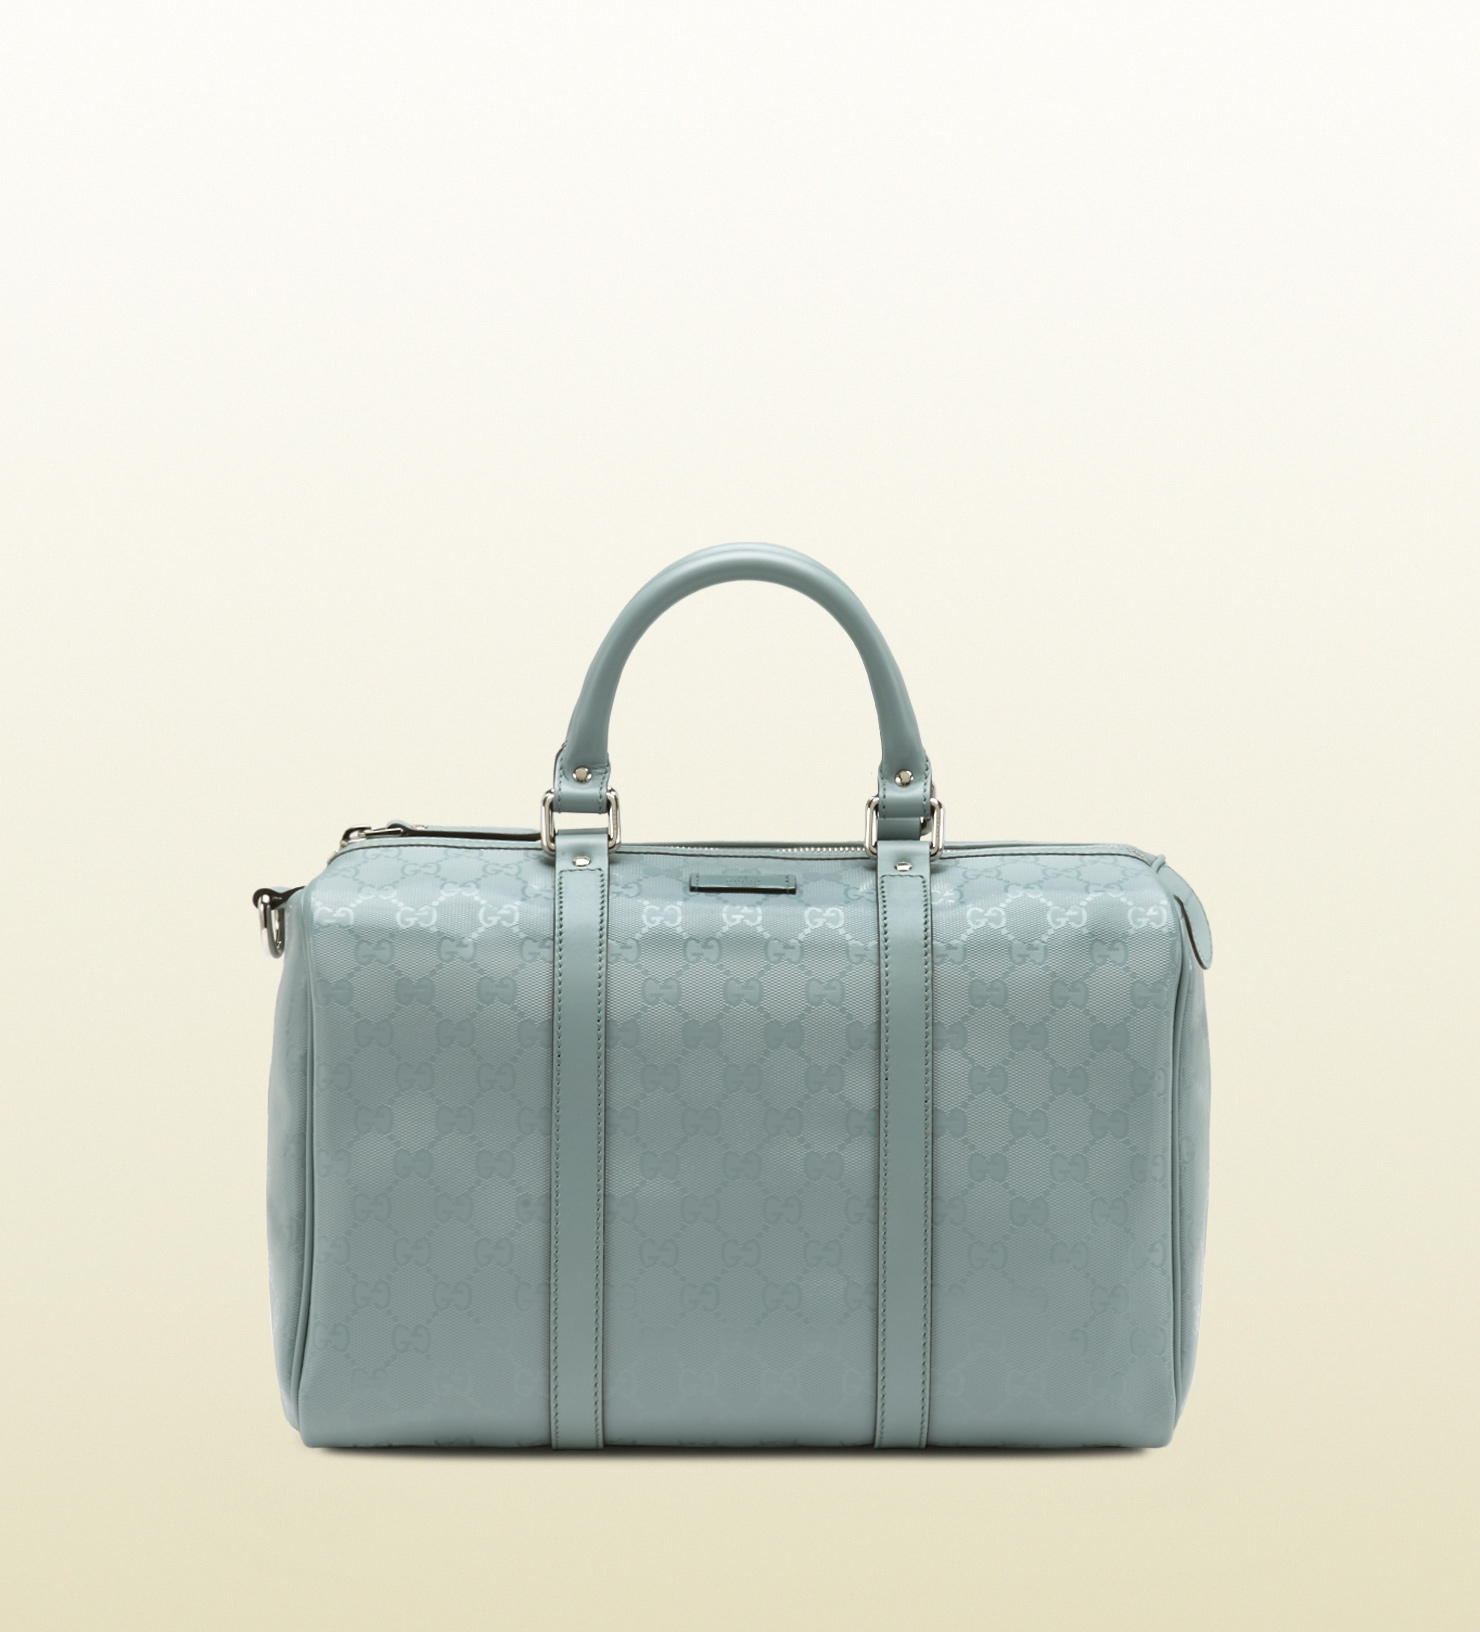 22e15e036280 Baby Blue Gucci Bag - Best Picture Of Blue Imageve.Org